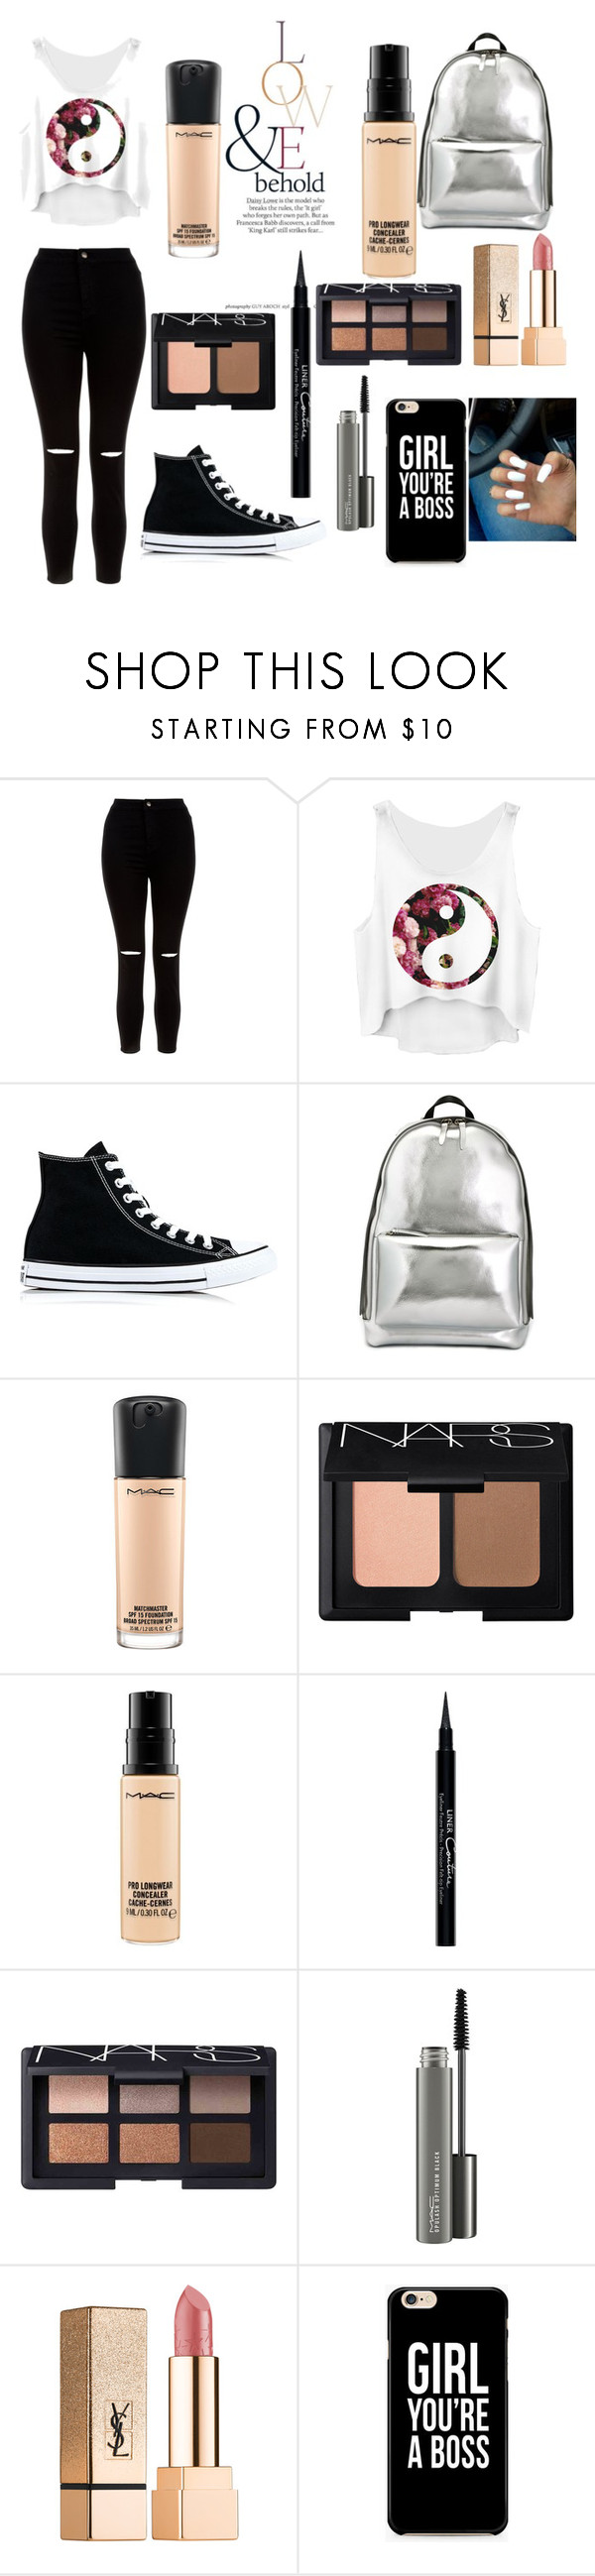 """casual day wear"" by tianamidd ❤ liked on Polyvore featuring New Look, Converse, 3.1 Phillip Lim, MAC Cosmetics, NARS Cosmetics, ASOS, Givenchy and Yves Saint Laurent"